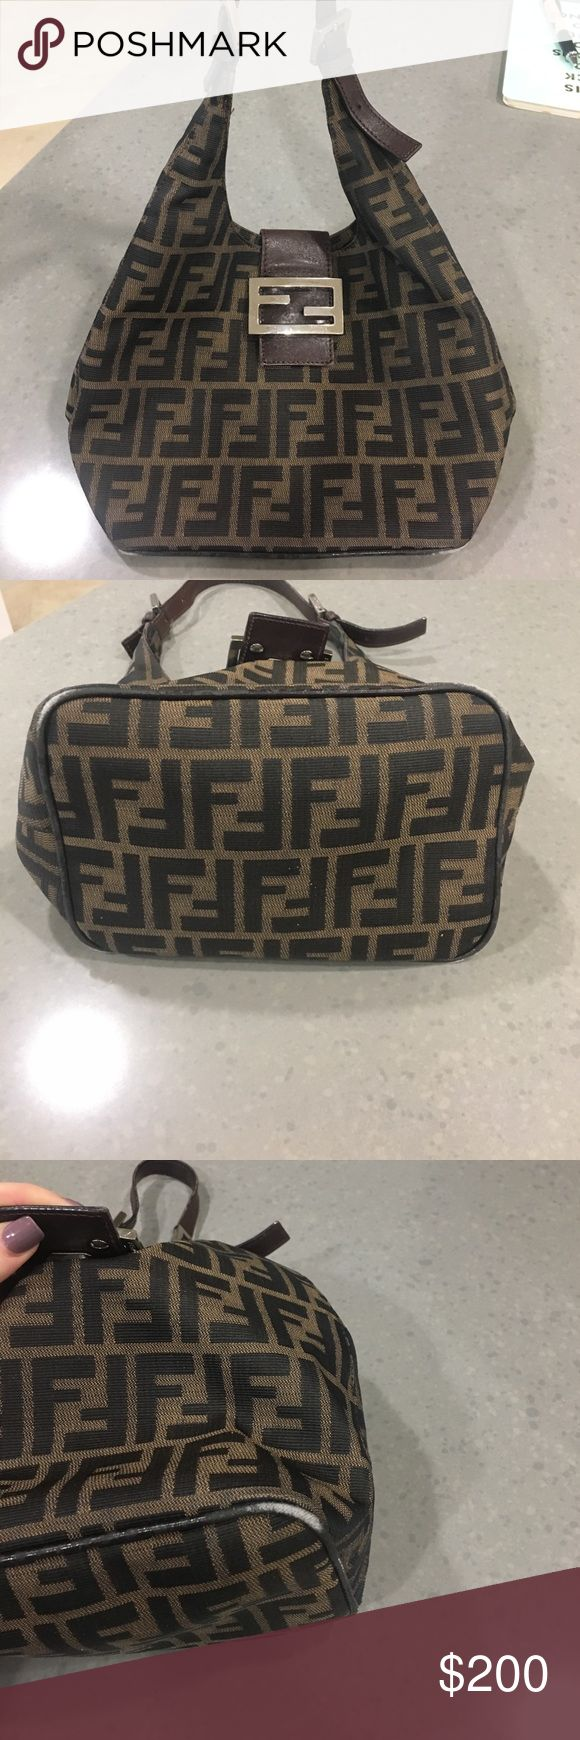 Fendi Purse 💯 authentic- used Real Fendi Bag. Minor worn edges on bottom of bag at the four corners. Great bag! I loved it- just don't use it enough Fendi Bags Shoulder Bags